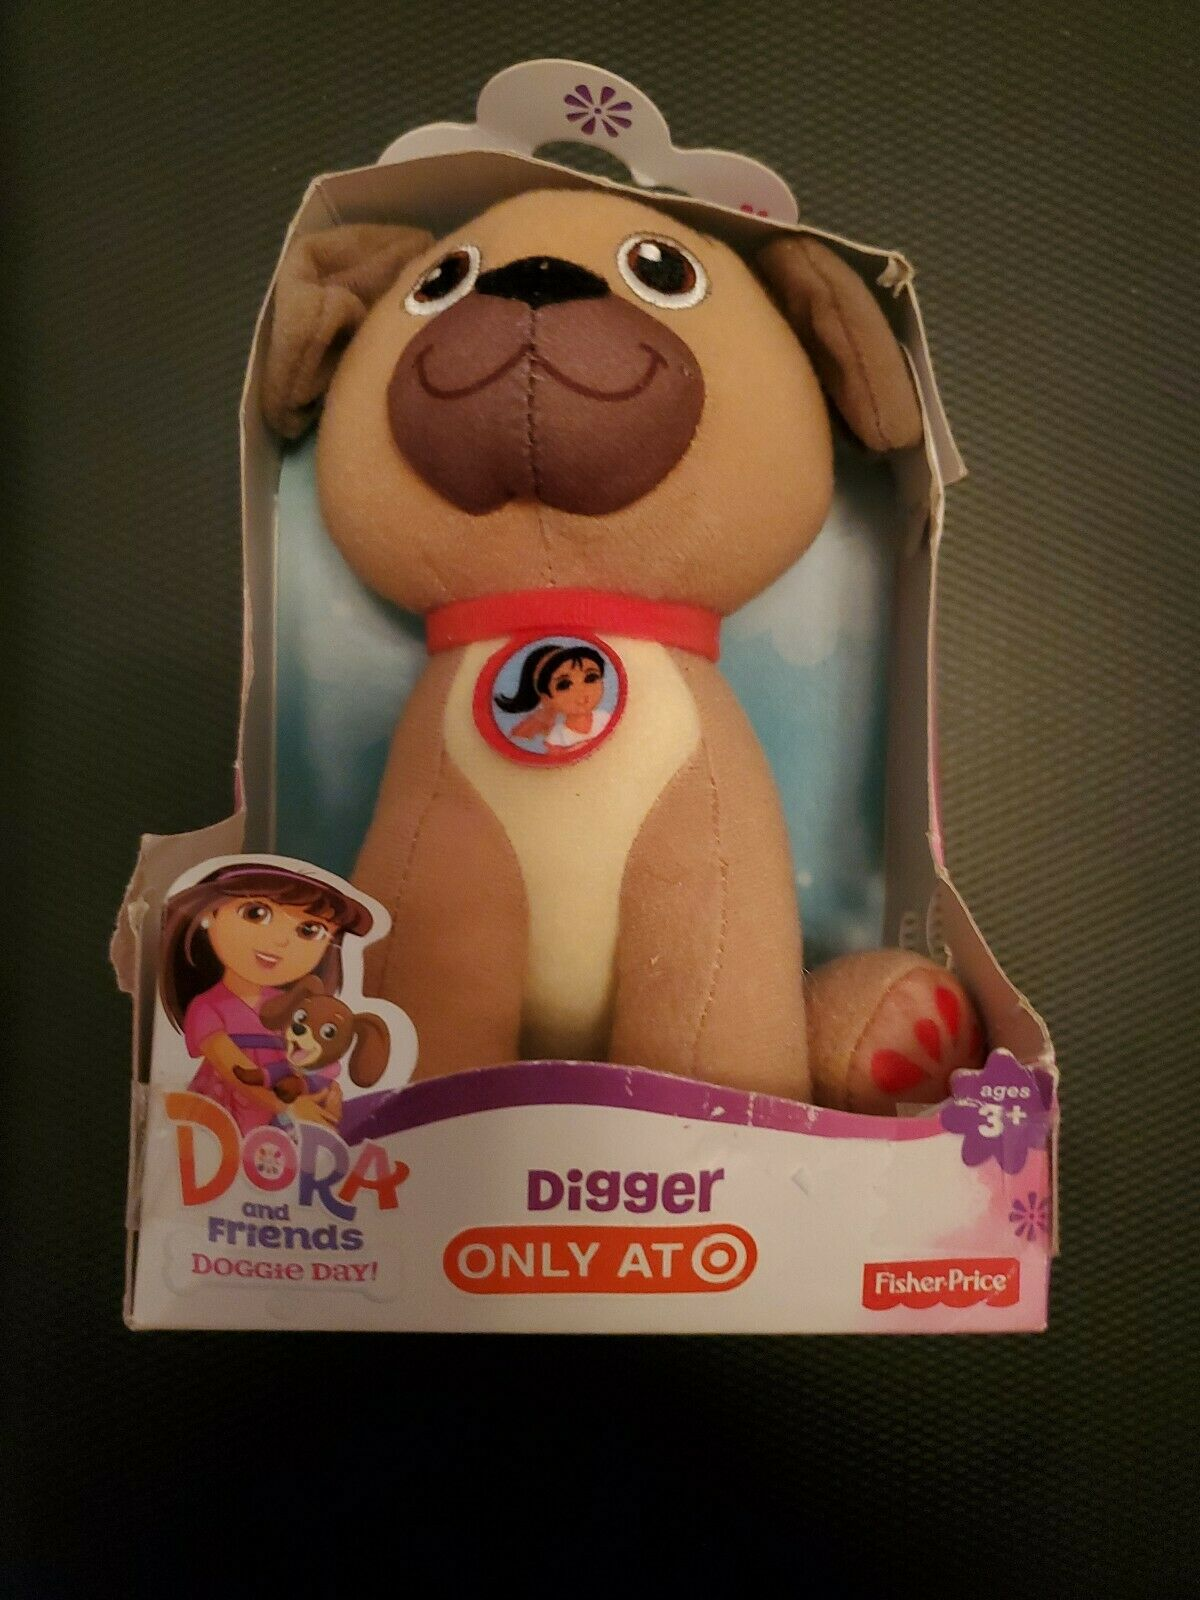 Dora And Friends Into The City Doggie Day : friends, doggie, Nickelodeon, Friends, Doggie, Digger, Puppy, Plush, Online